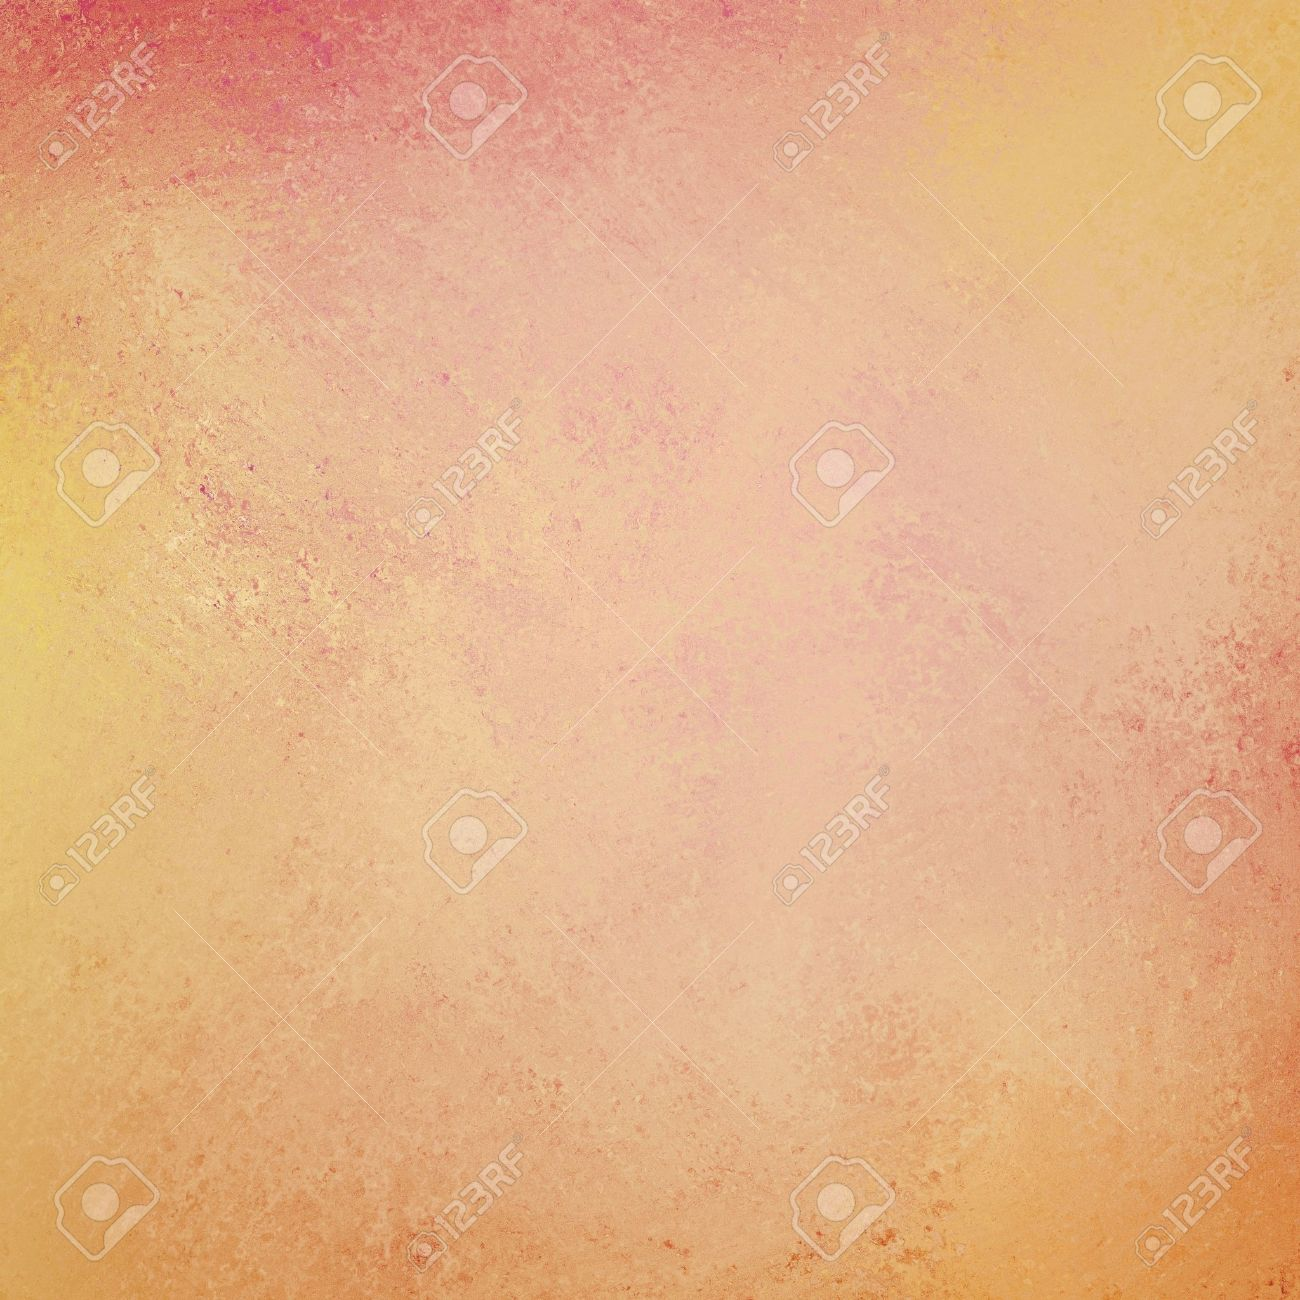 Website soft colors - Stock Photo Abstract Pink Background Beige Color Soft Valentine Background Of Vintage Grunge Background Texture Yellowed Center Pastel Paper Or Old